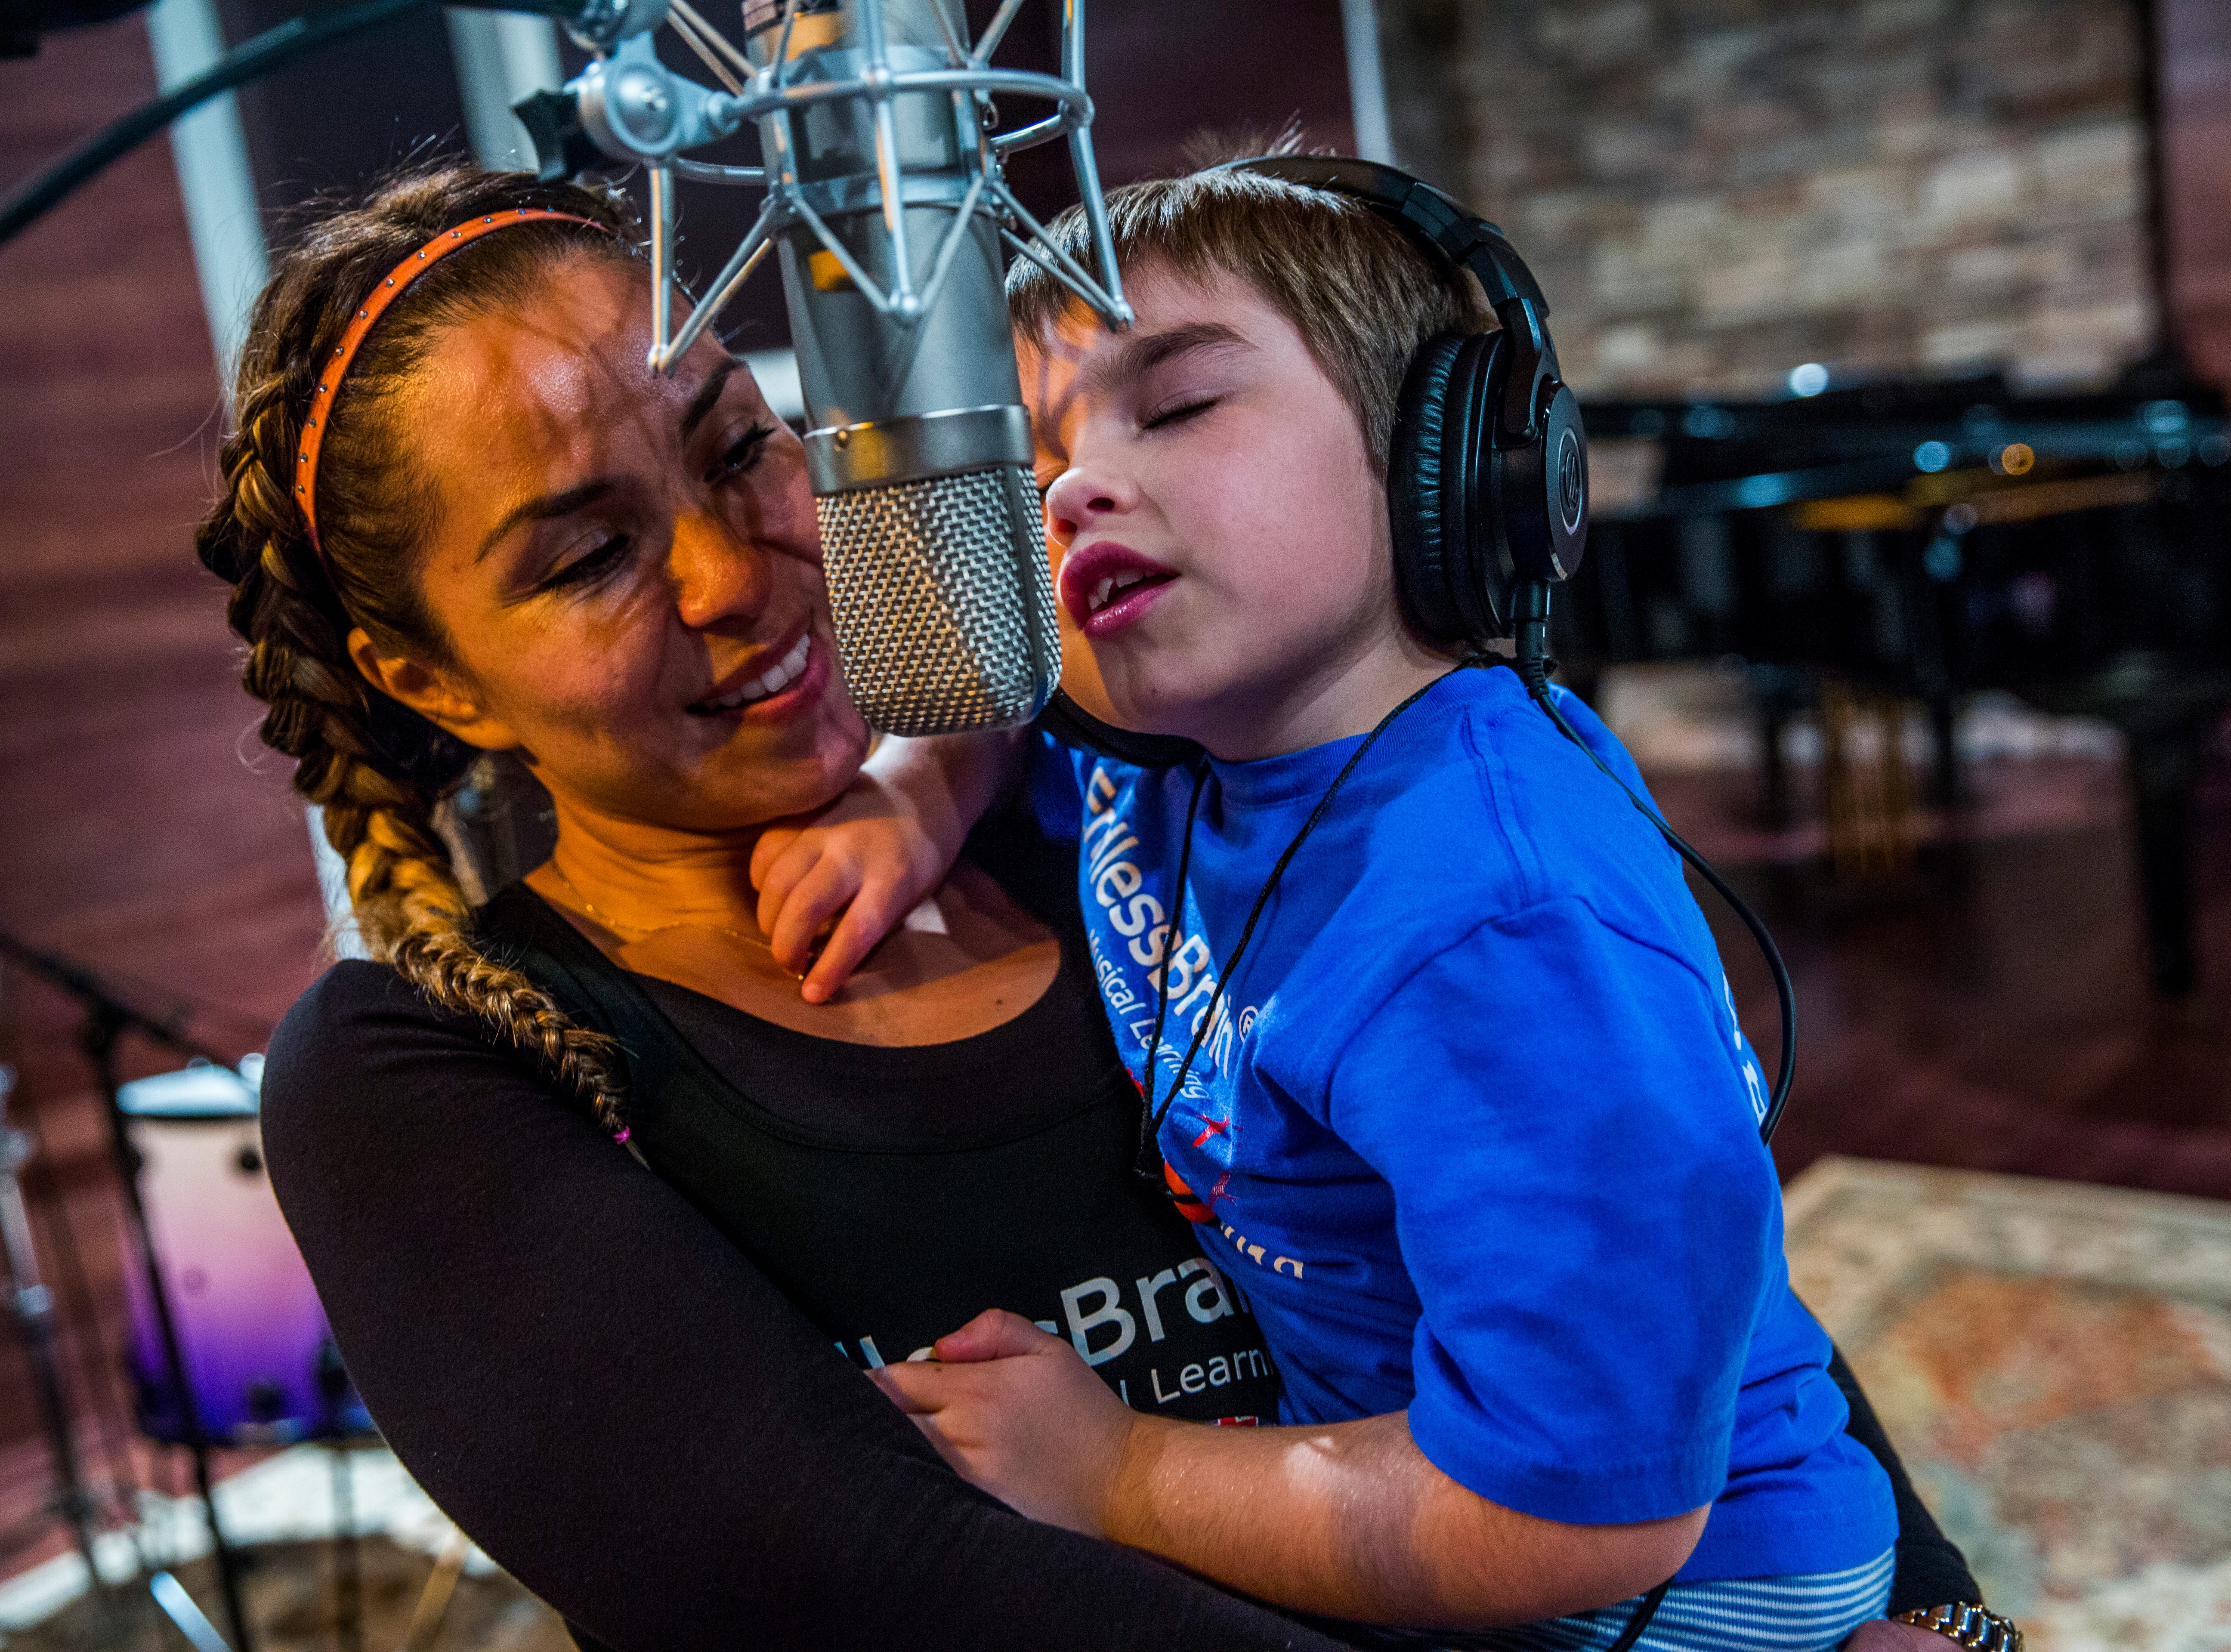 Marcela Guimoye holds Talley Louise Wilson, 7, as she sings at Mastertrax Recording Studio in Bonita Springs on Tuesday, Aug. 7, 2018. Before becoming involved with EndlessBrain, Talley didn't verbally communicate much, but her parents say she can communicate clearer and she sings much more.